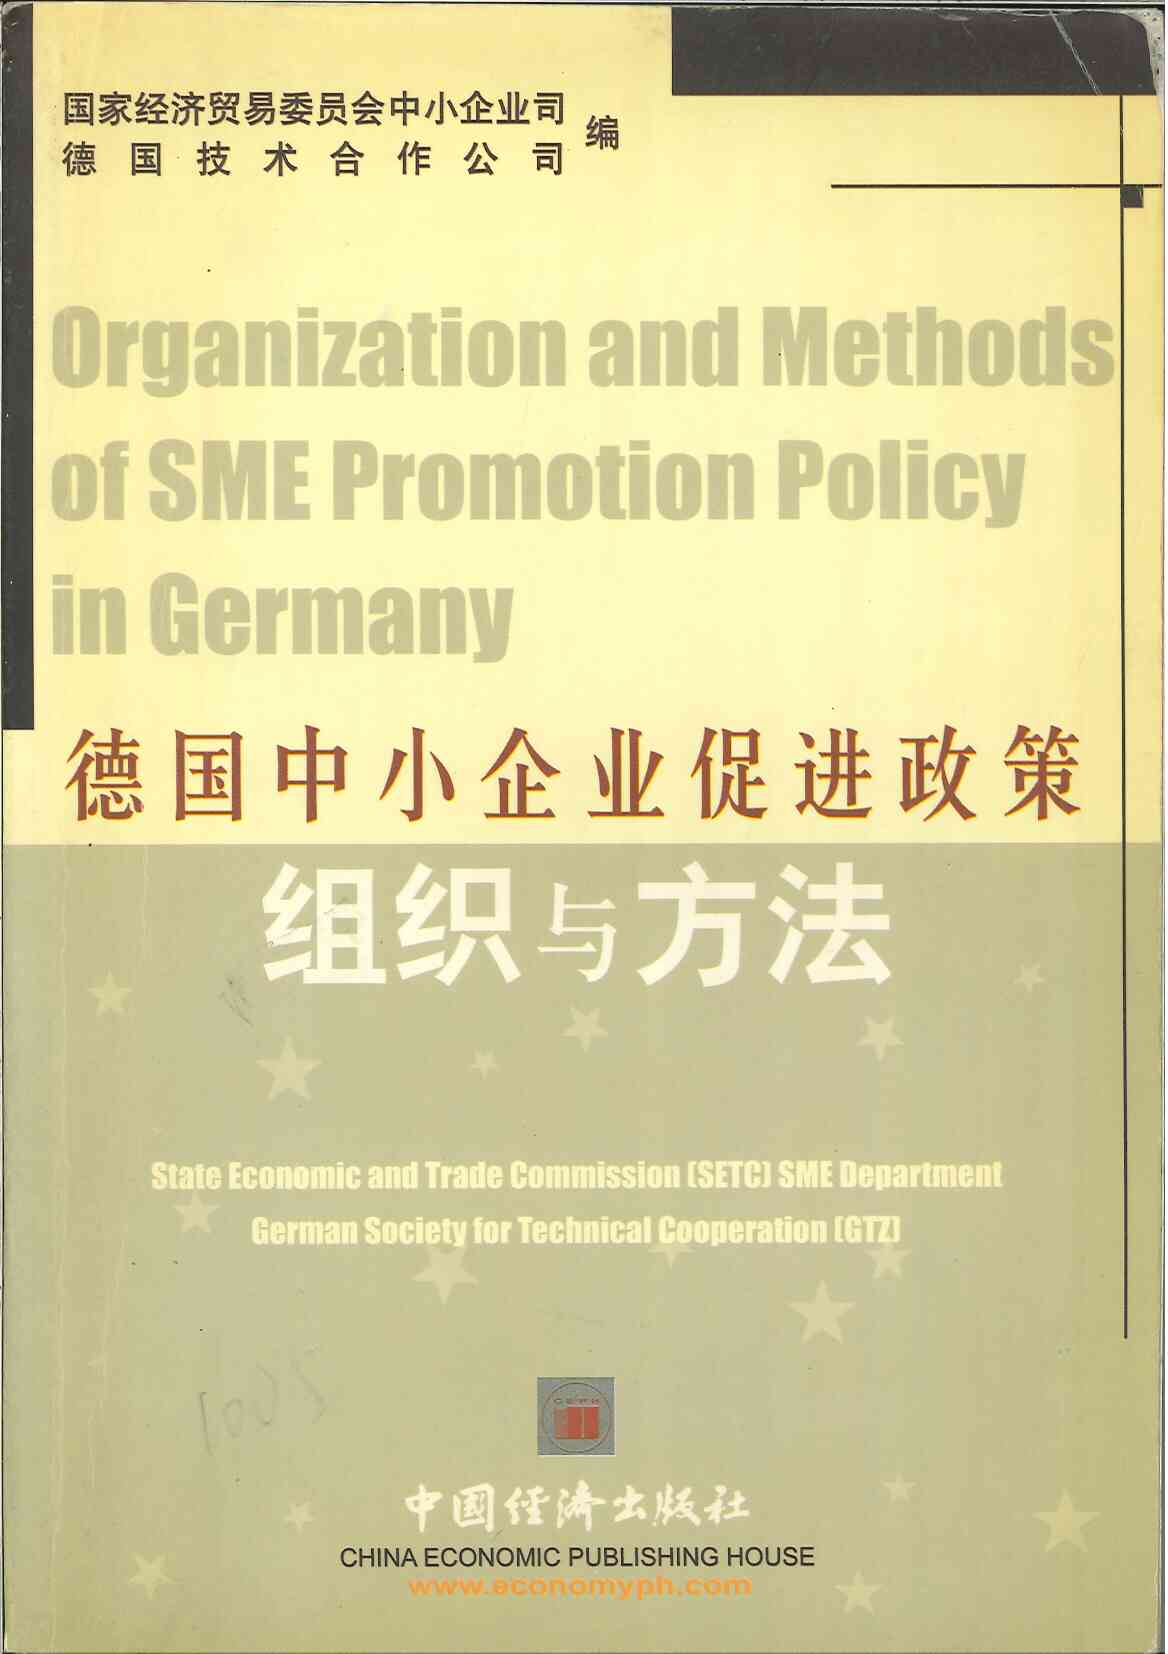 德国中小企业促进政策组织与方法=Organization and methods of SME promotion policy in Germany